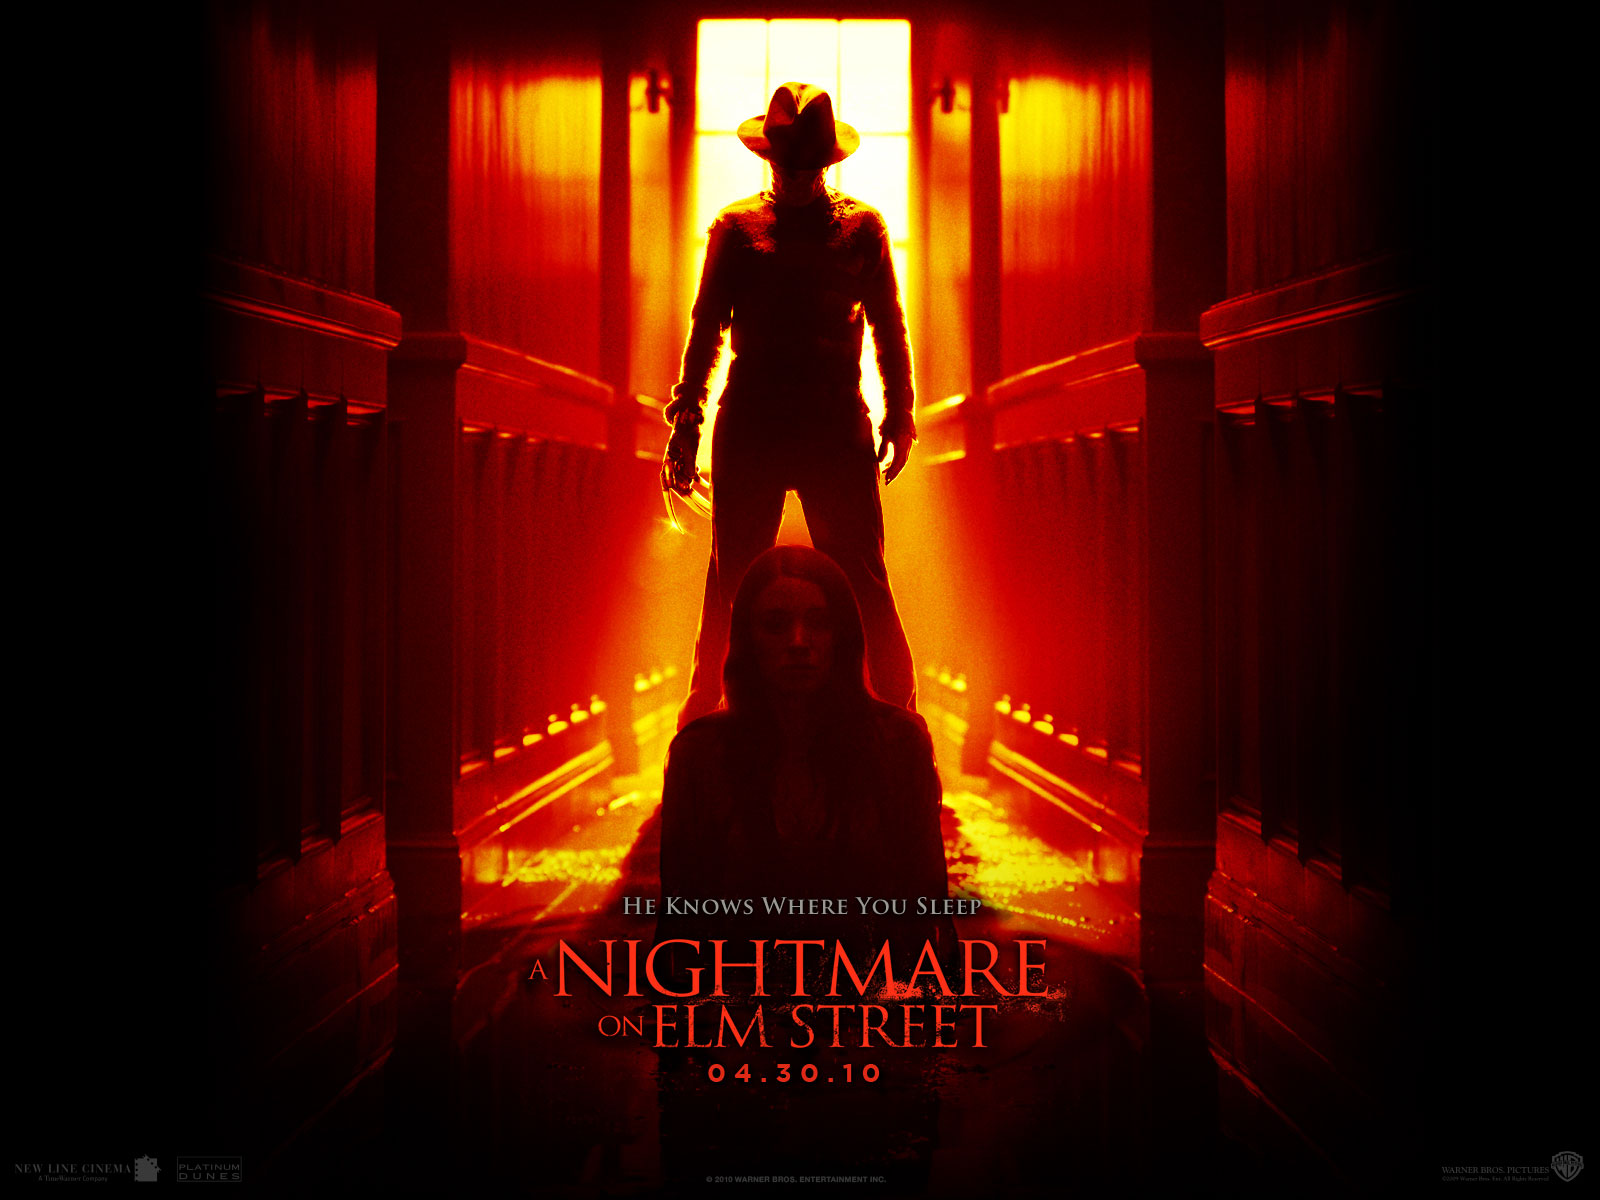 nightmare on elm street The end productions is raising funds for scream, queen my nightmare on elm street on kickstarter an intimate and revealing look behind the scenes of horror's most controversial slasher sequel featuring mark patton and robert englund.